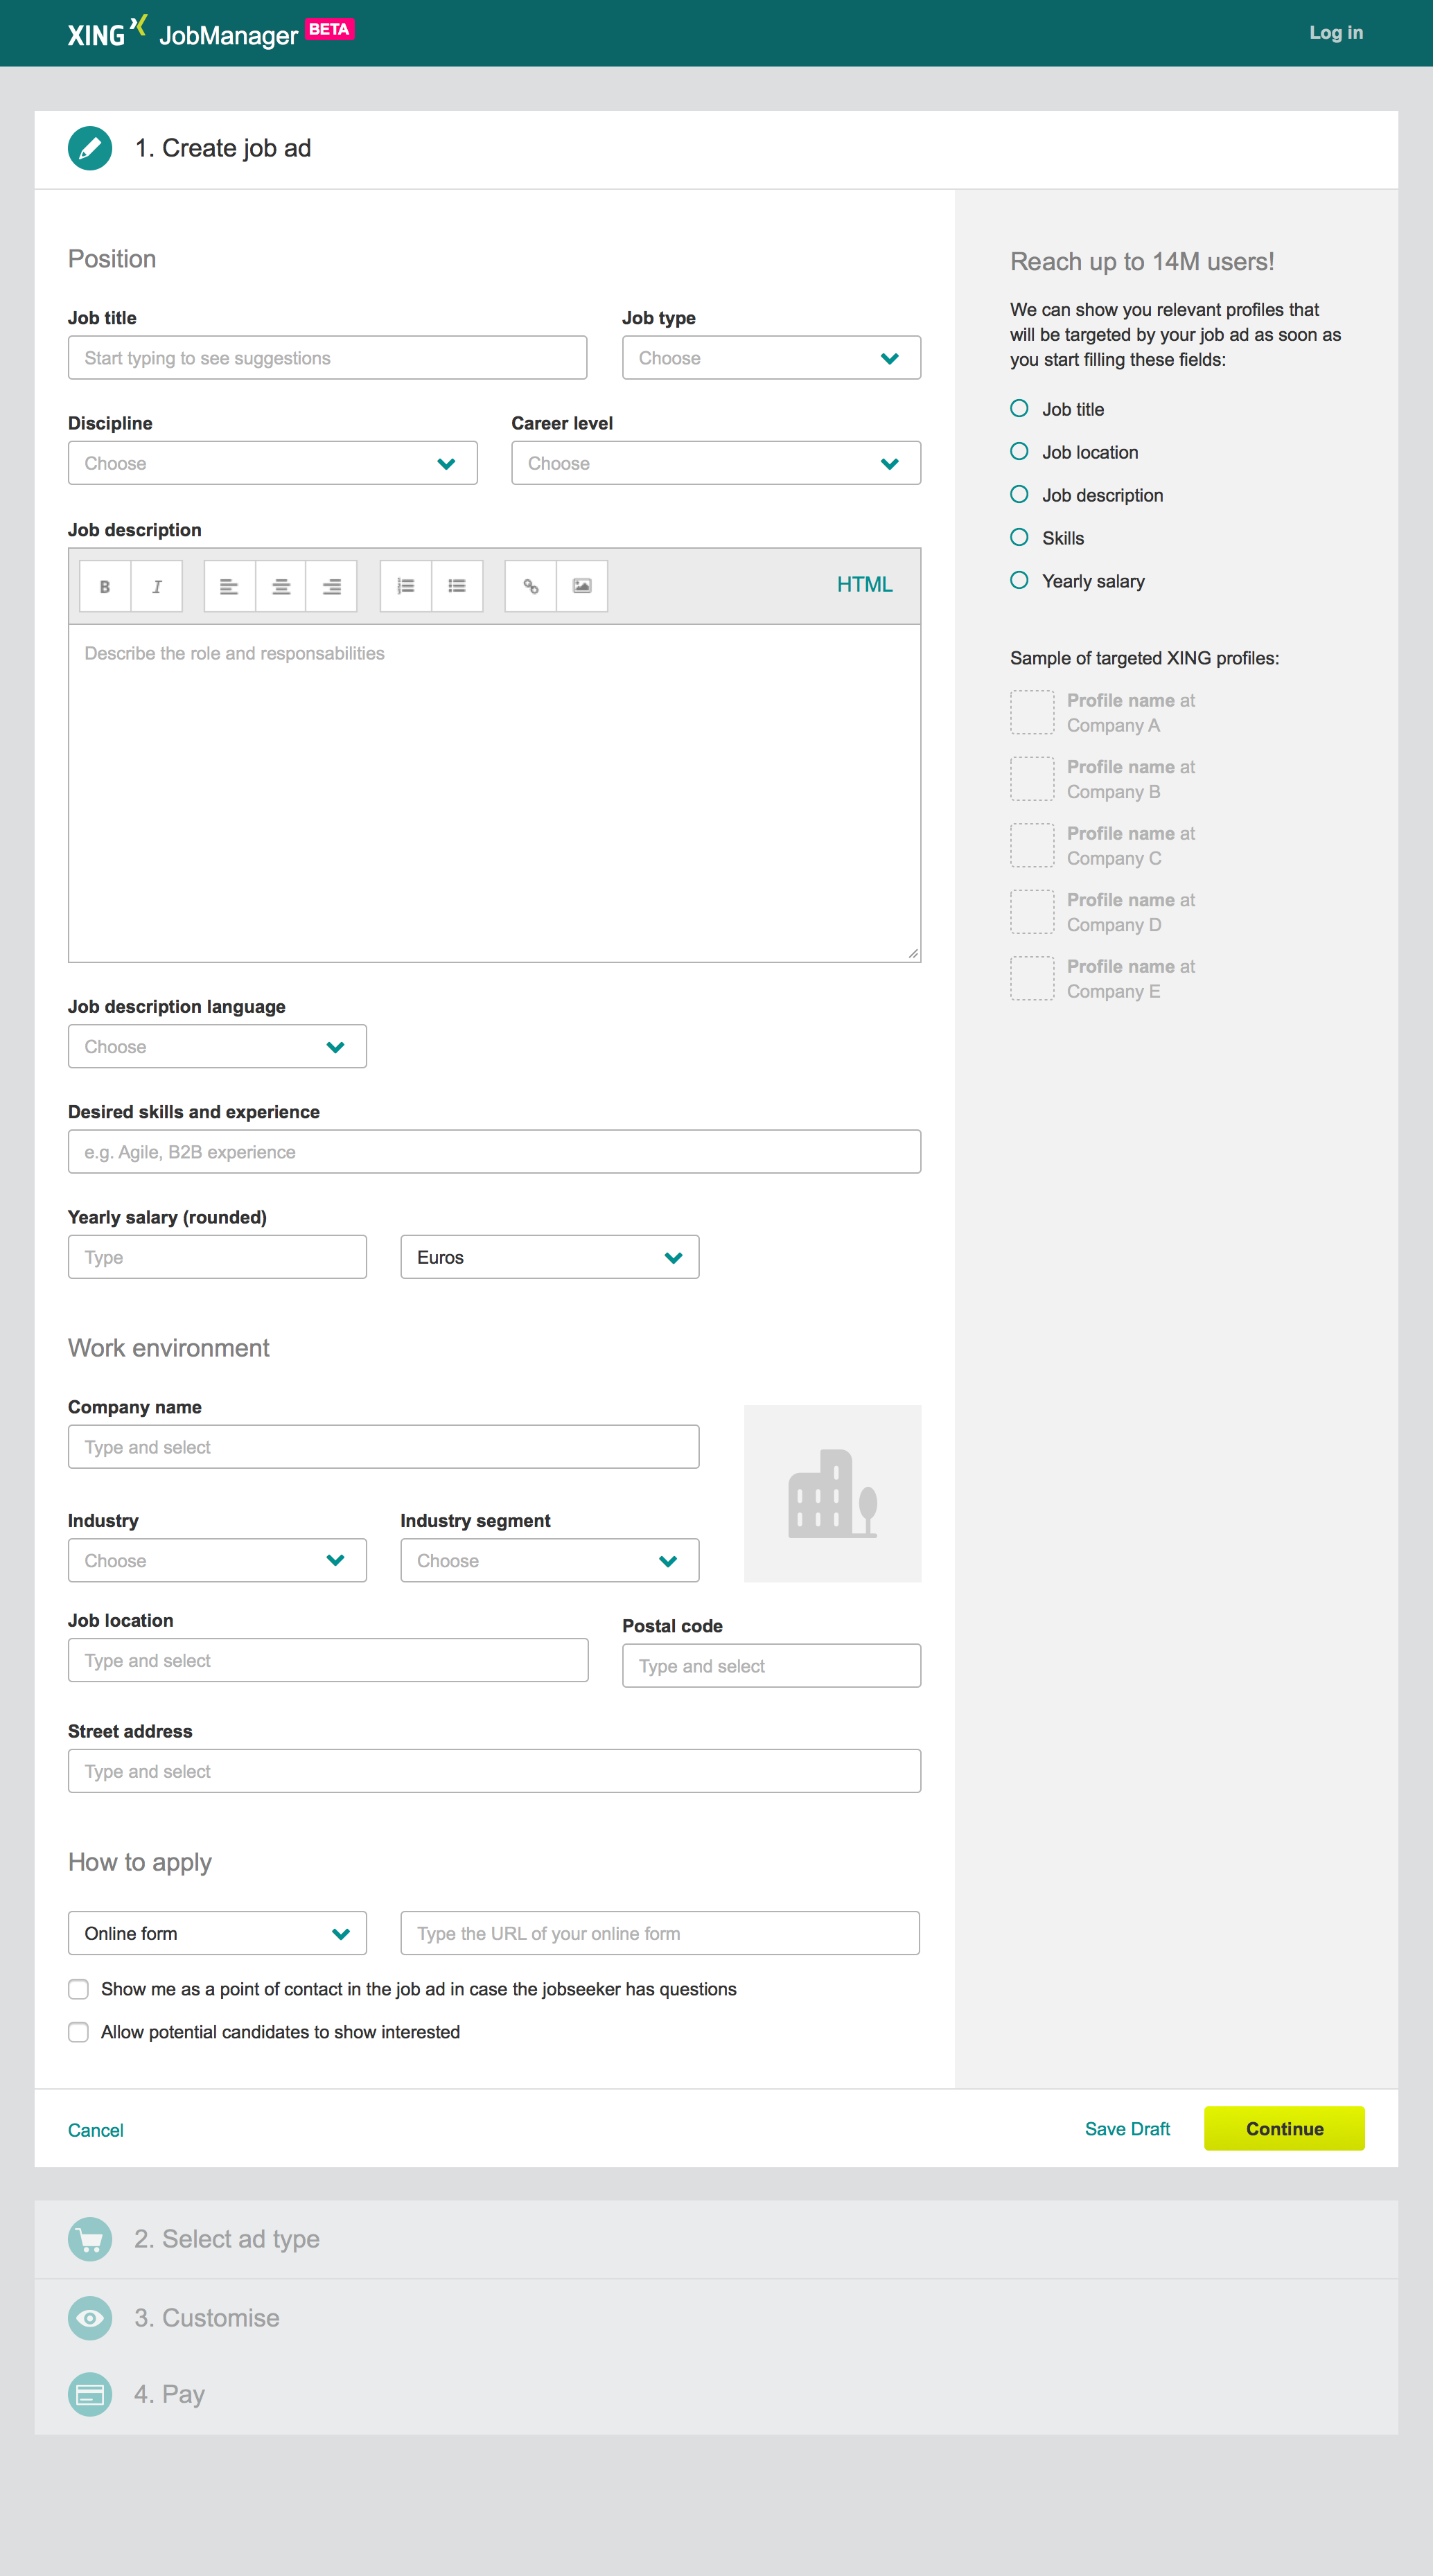 Job ad creation form mockup